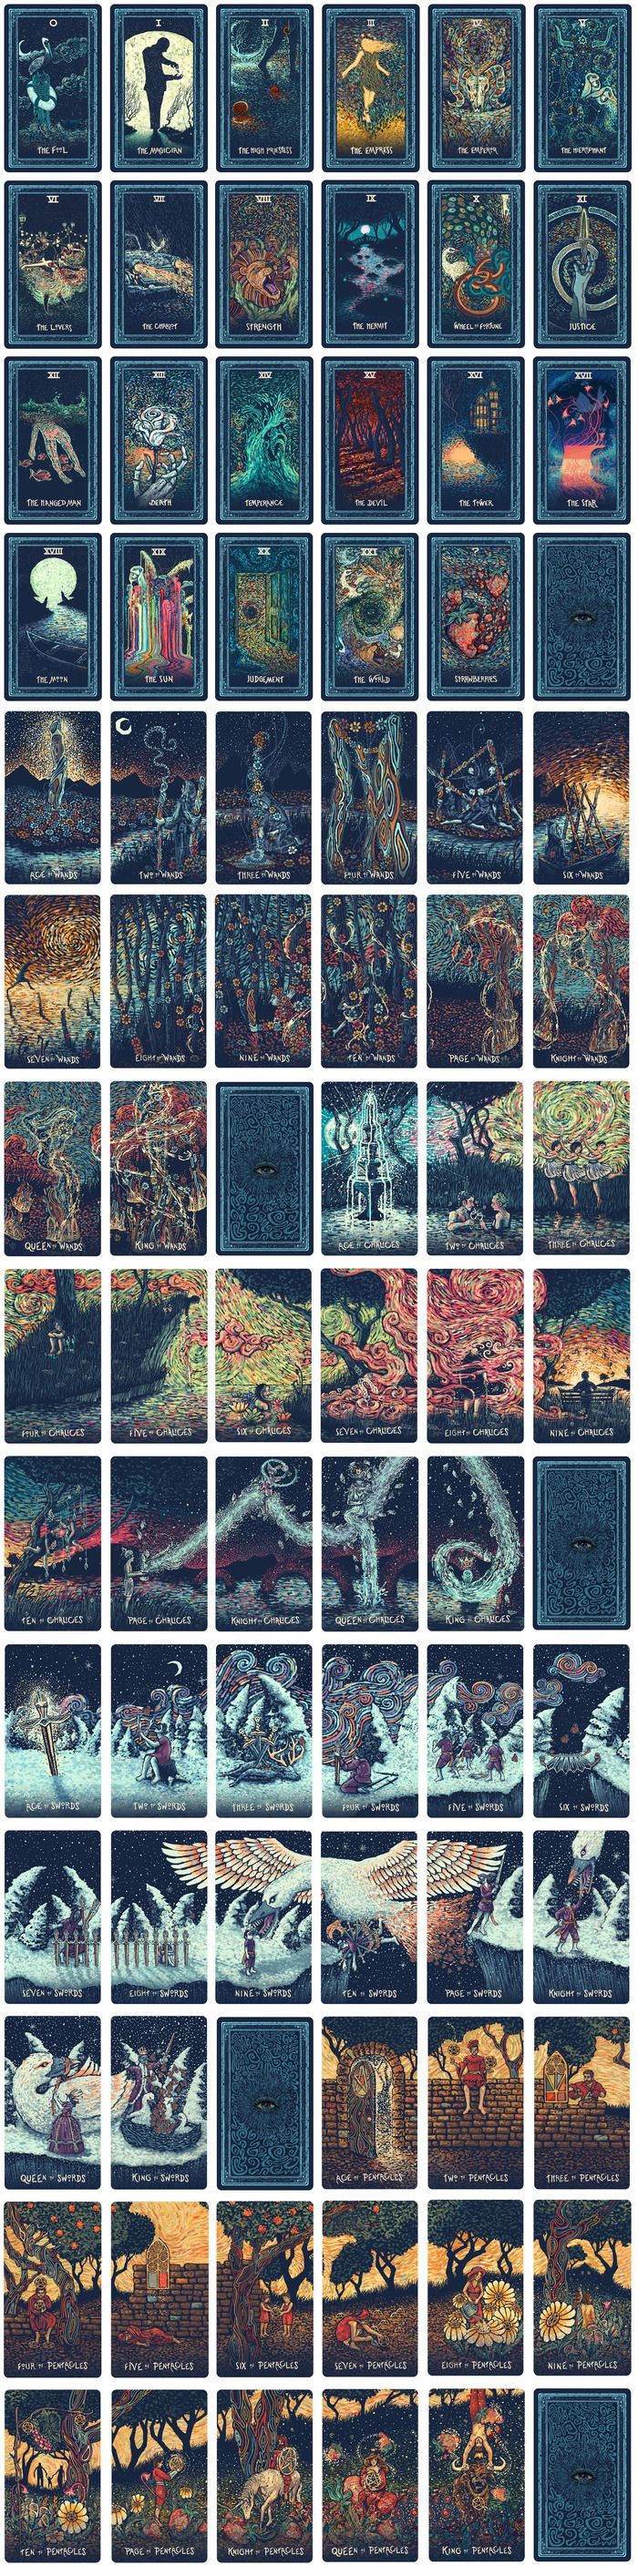 All 79 cards of the Prisma Visions Tarot. If you go to the link its easier to see, each set of swords, pentacles, chalices, and wands make a single picture when laid next to each other!